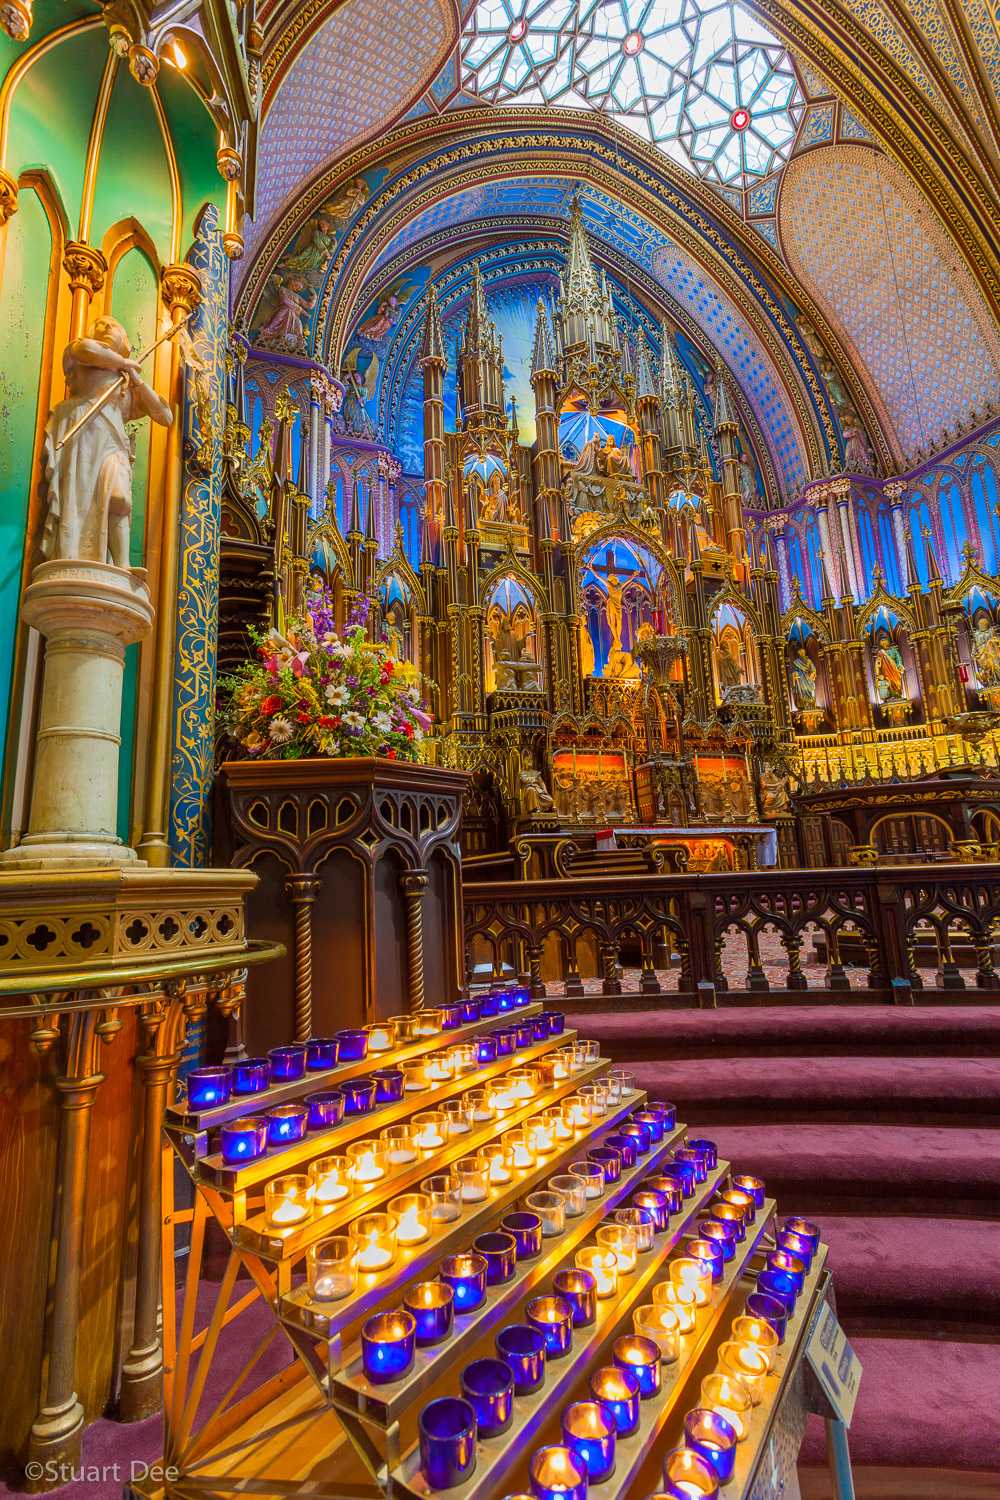 Votive candles and altar, Notre-Dame Basilica, Old Montreal, Montreal, Quebec, Canada. The church is one of the best known  landmarks and symbols of Montreal.